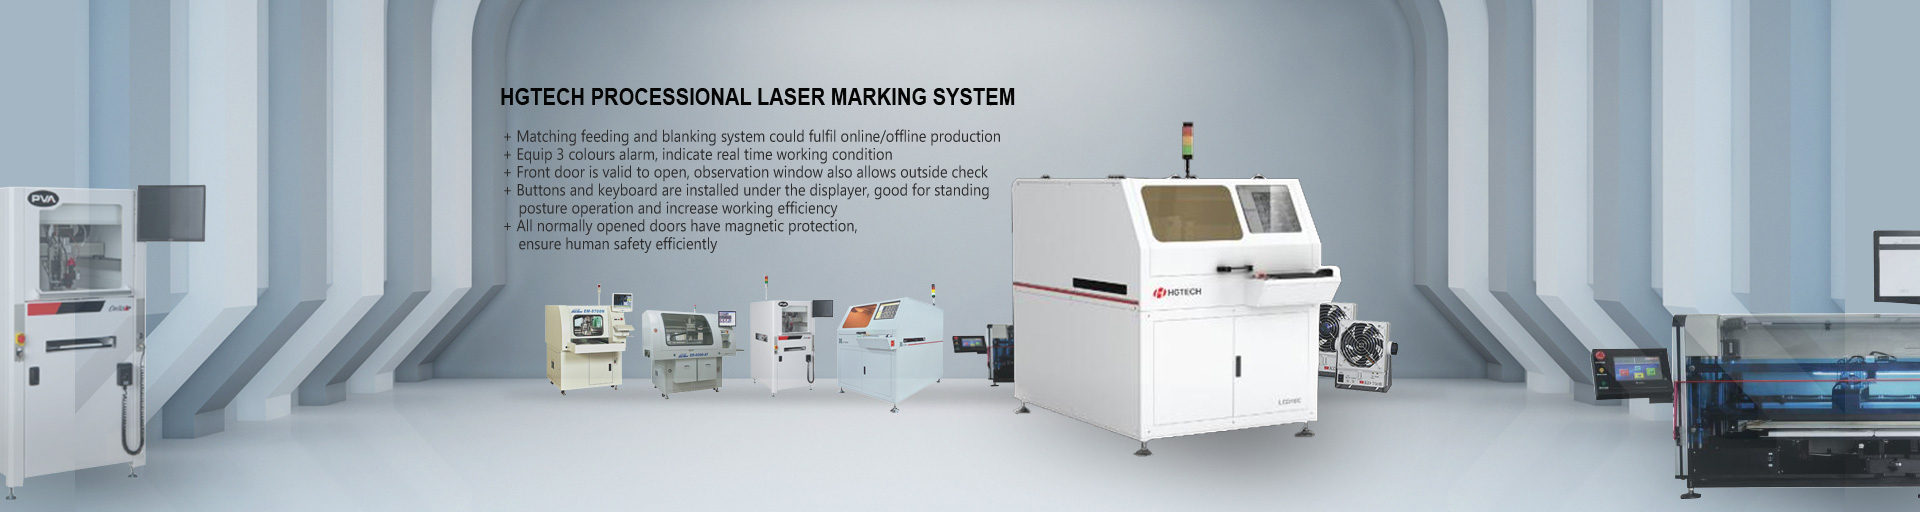 HGTECH-PROCESSIONAL-LASER-MARKING-SYSTEM-1-copy-5